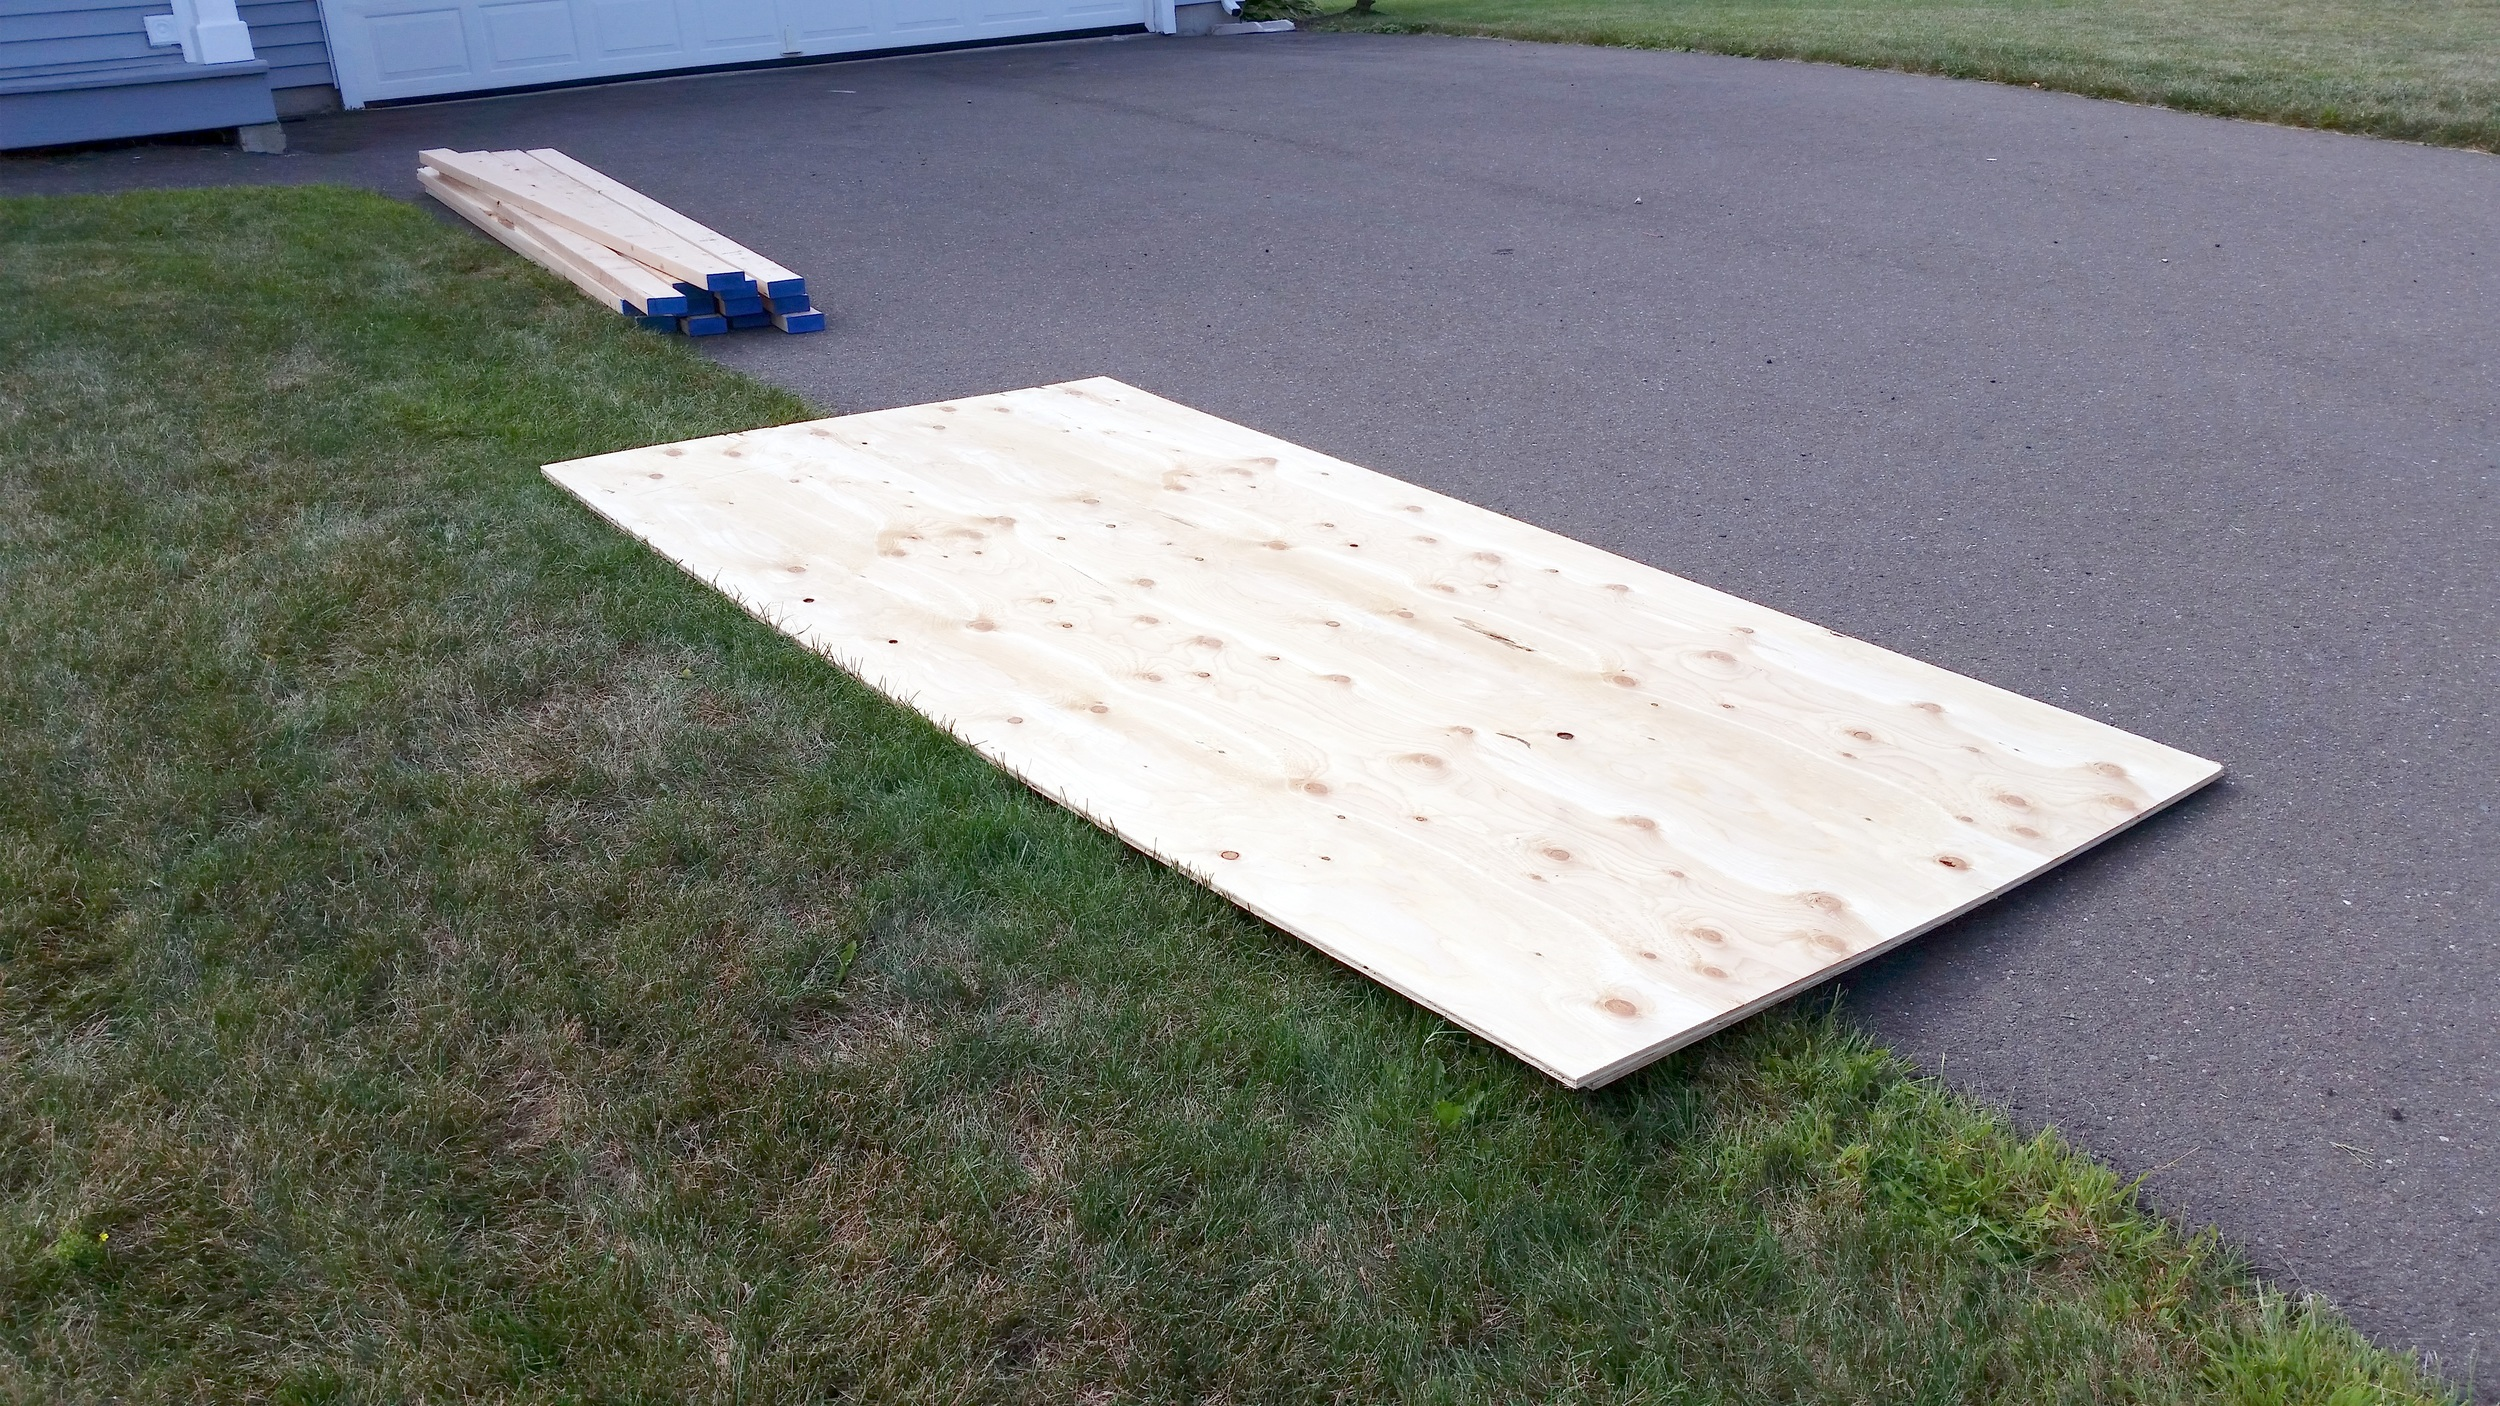 "I ordered the material from a local lumber yard. In addition I used some wood glue and a 10 pound box of 3"" wood screws. The table surfaces are 4 feet by 8 feet of 3/8"" plywood. Total cost was around $100."